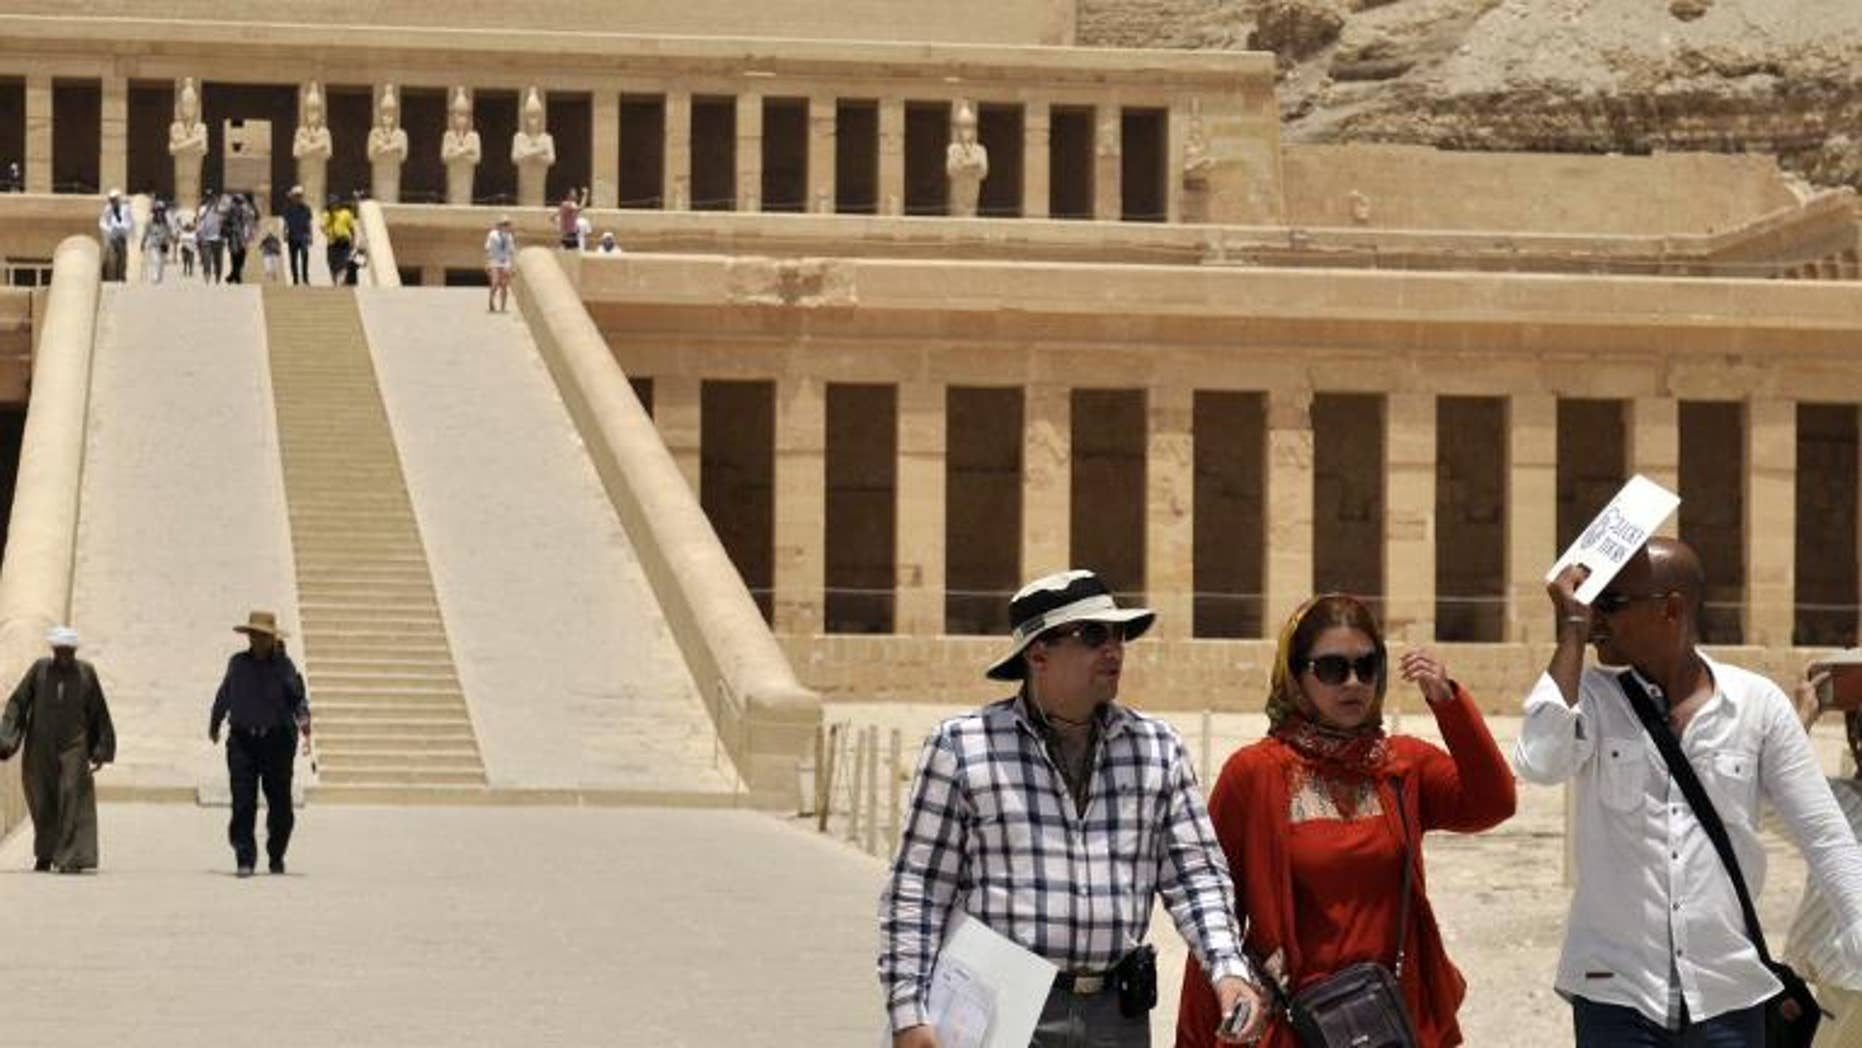 Iranian tourists visit the Temple of Hatshepsut in Egypt on June 3, 2013